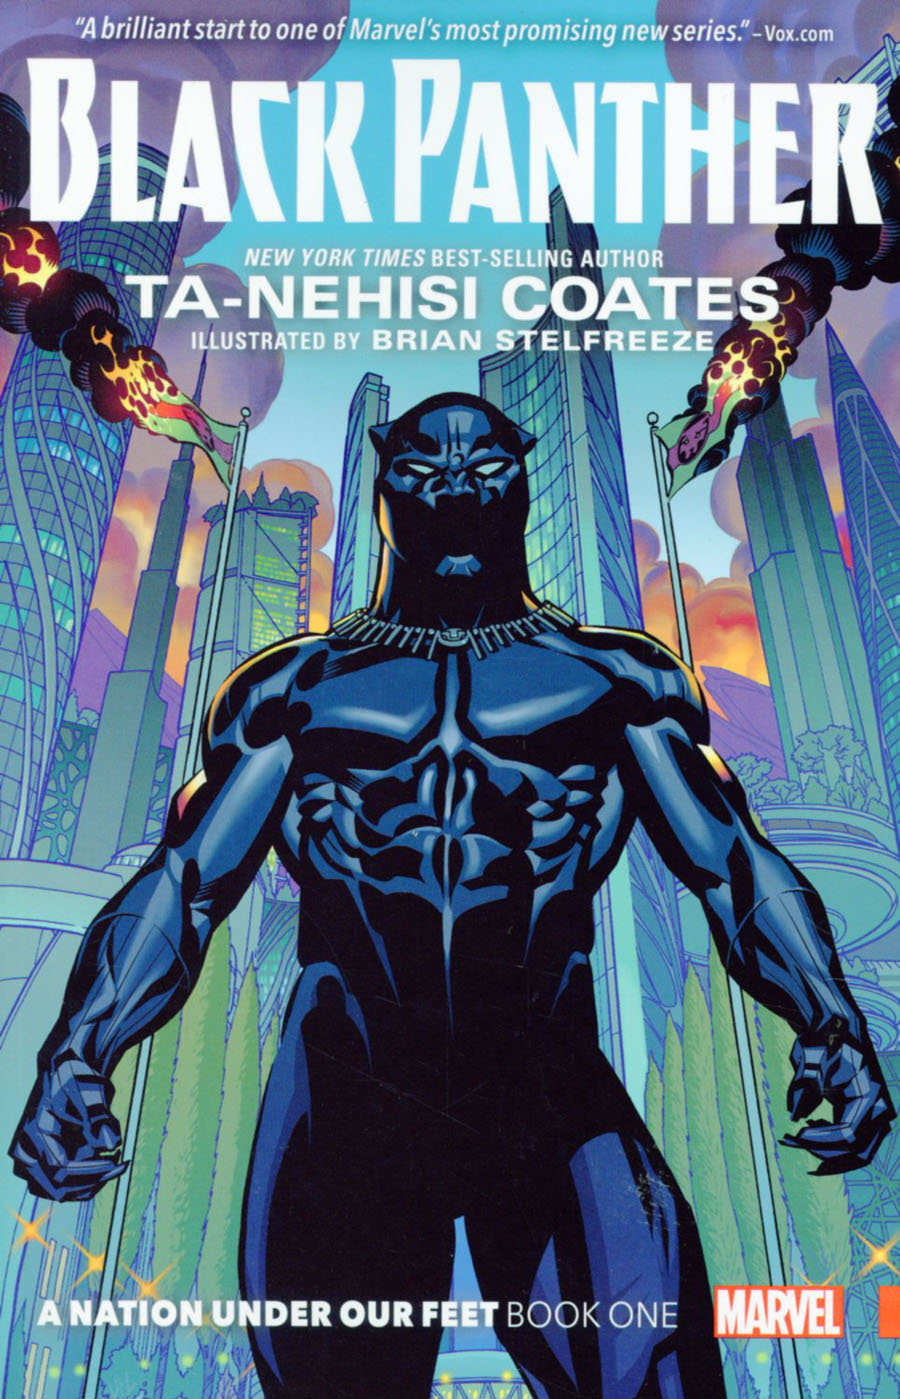 Black Panther A Nation Under Our Feet Vol 1 TP